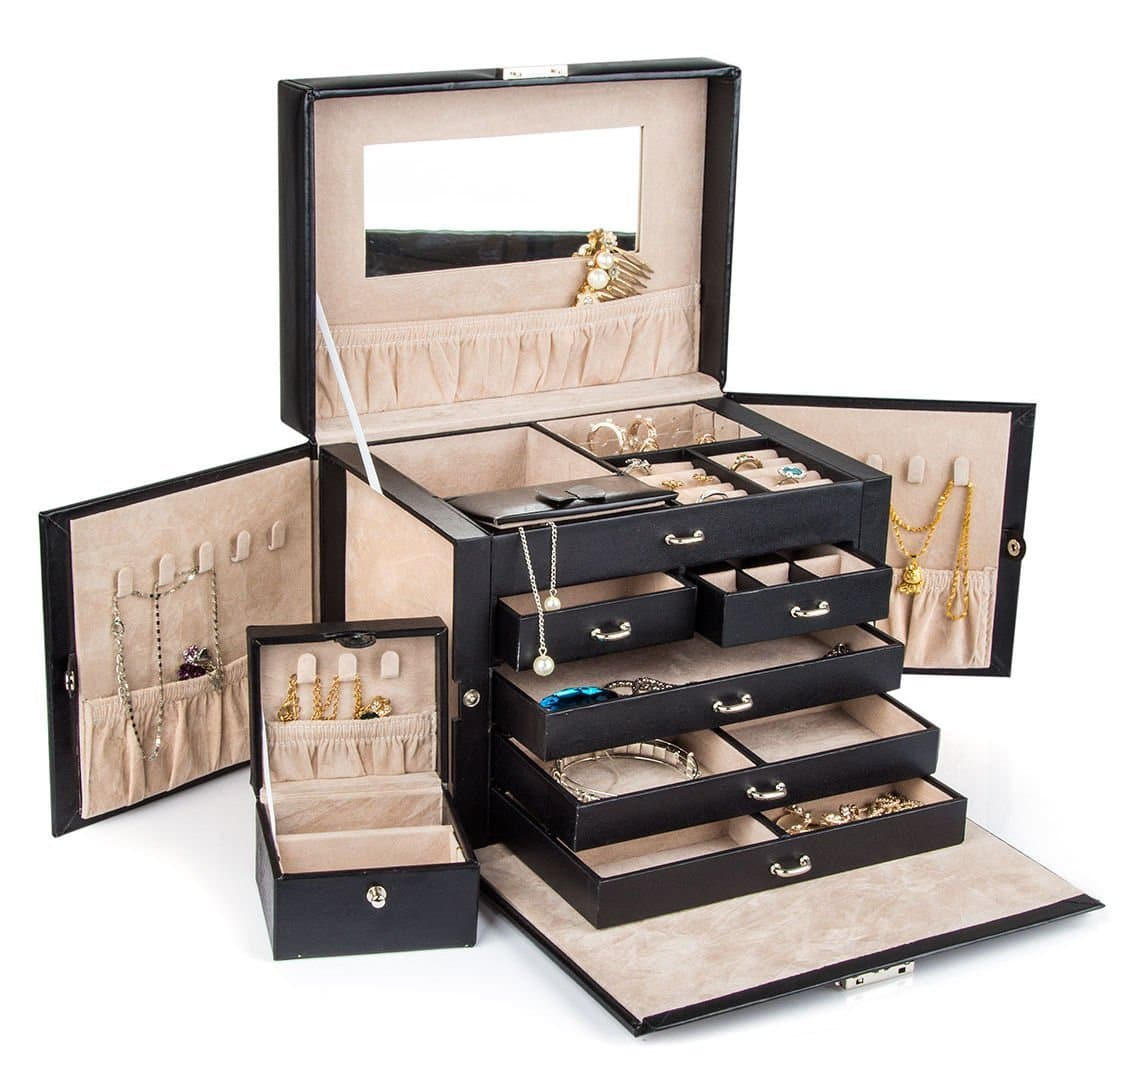 Top 10 Best Jewelry Boxes 2019 Review